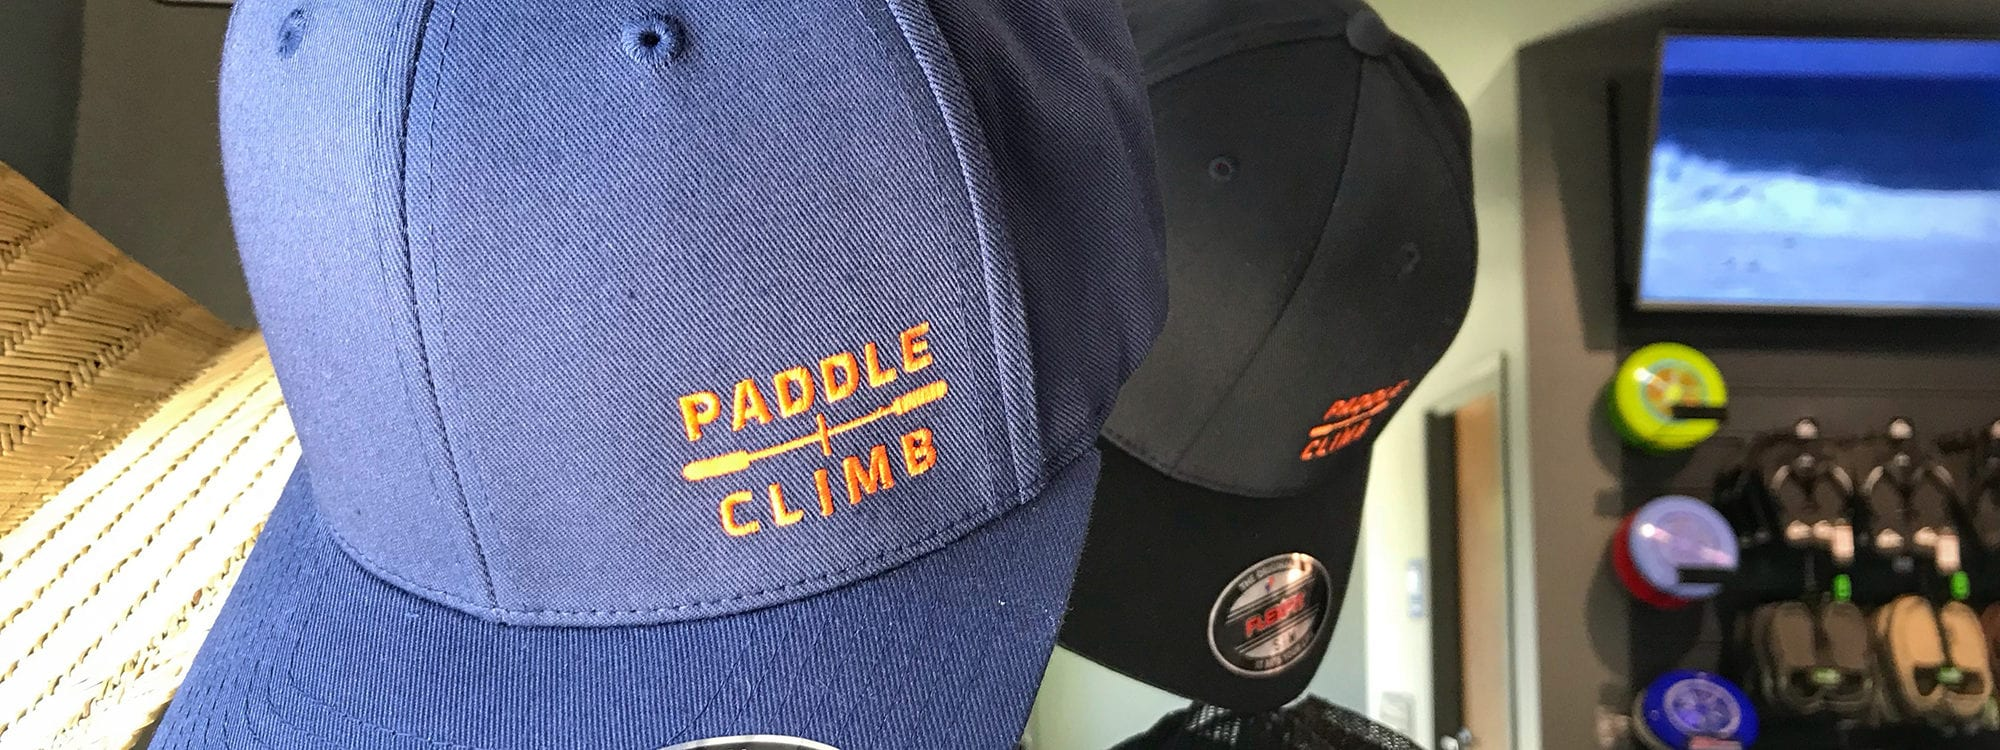 Paddle and Climb Hats Sales